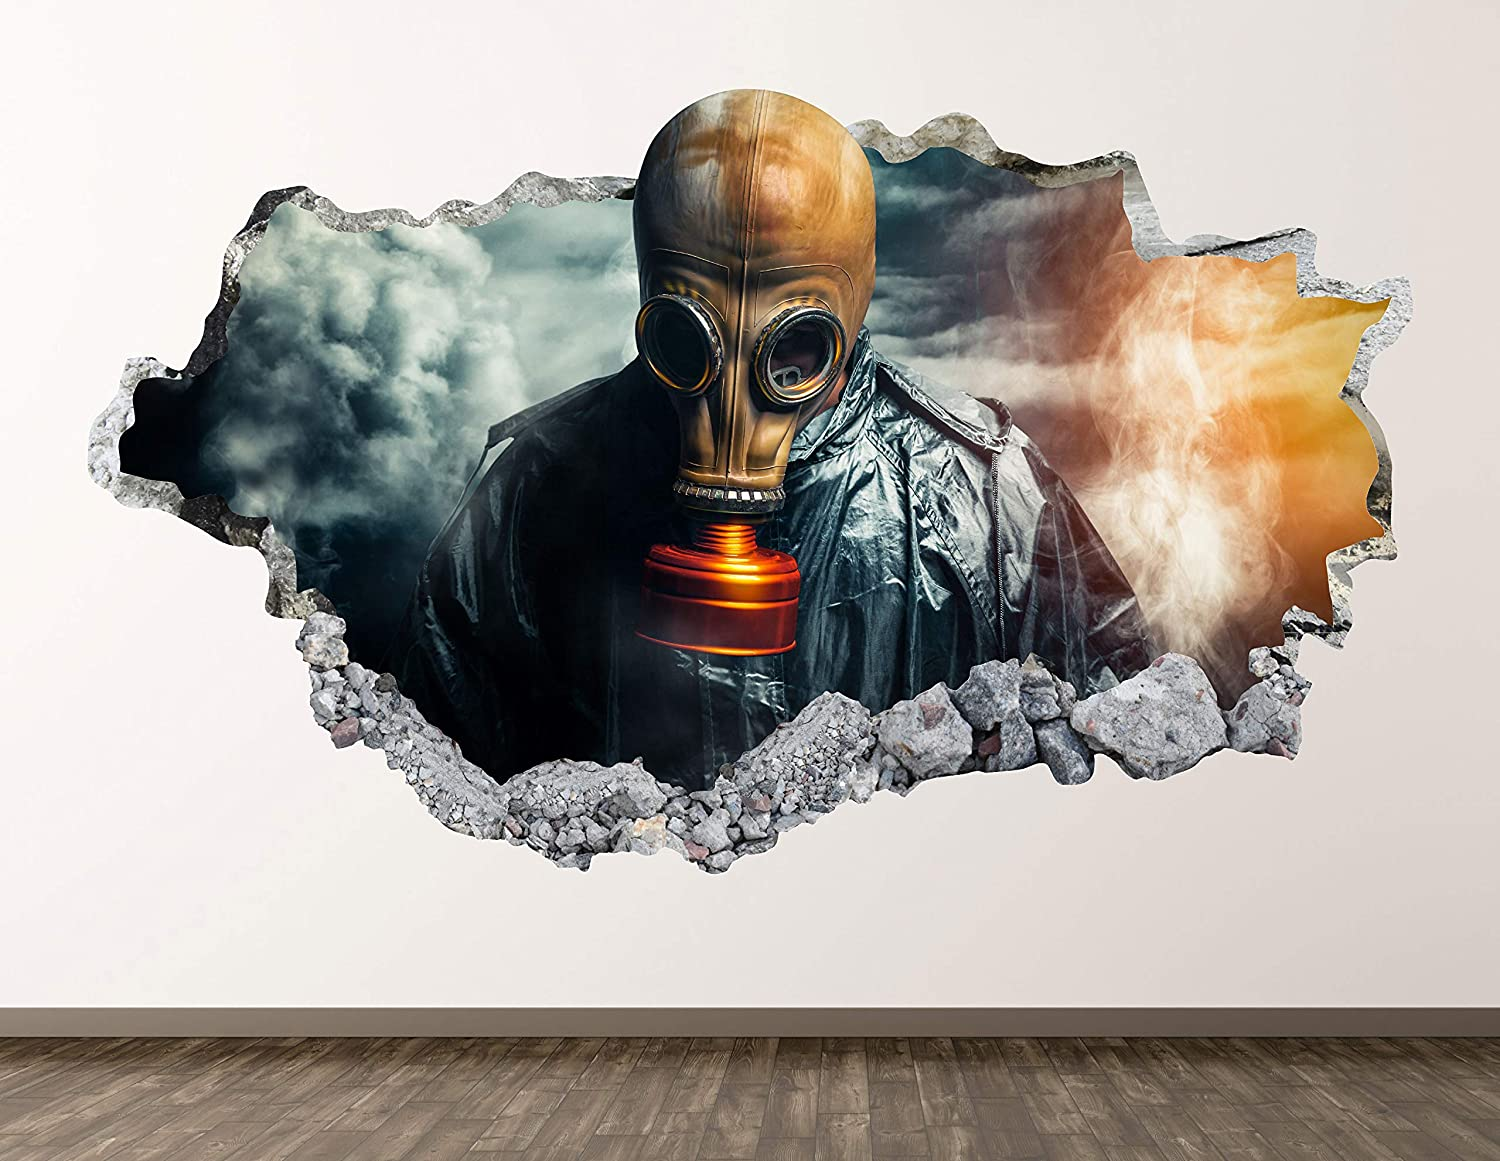 Soldier Gas Mask Wall Decal Art Decor 3D Smashed Military Clothing Sticker Poster Kids Room Mural Custom Gift BL1783 (22